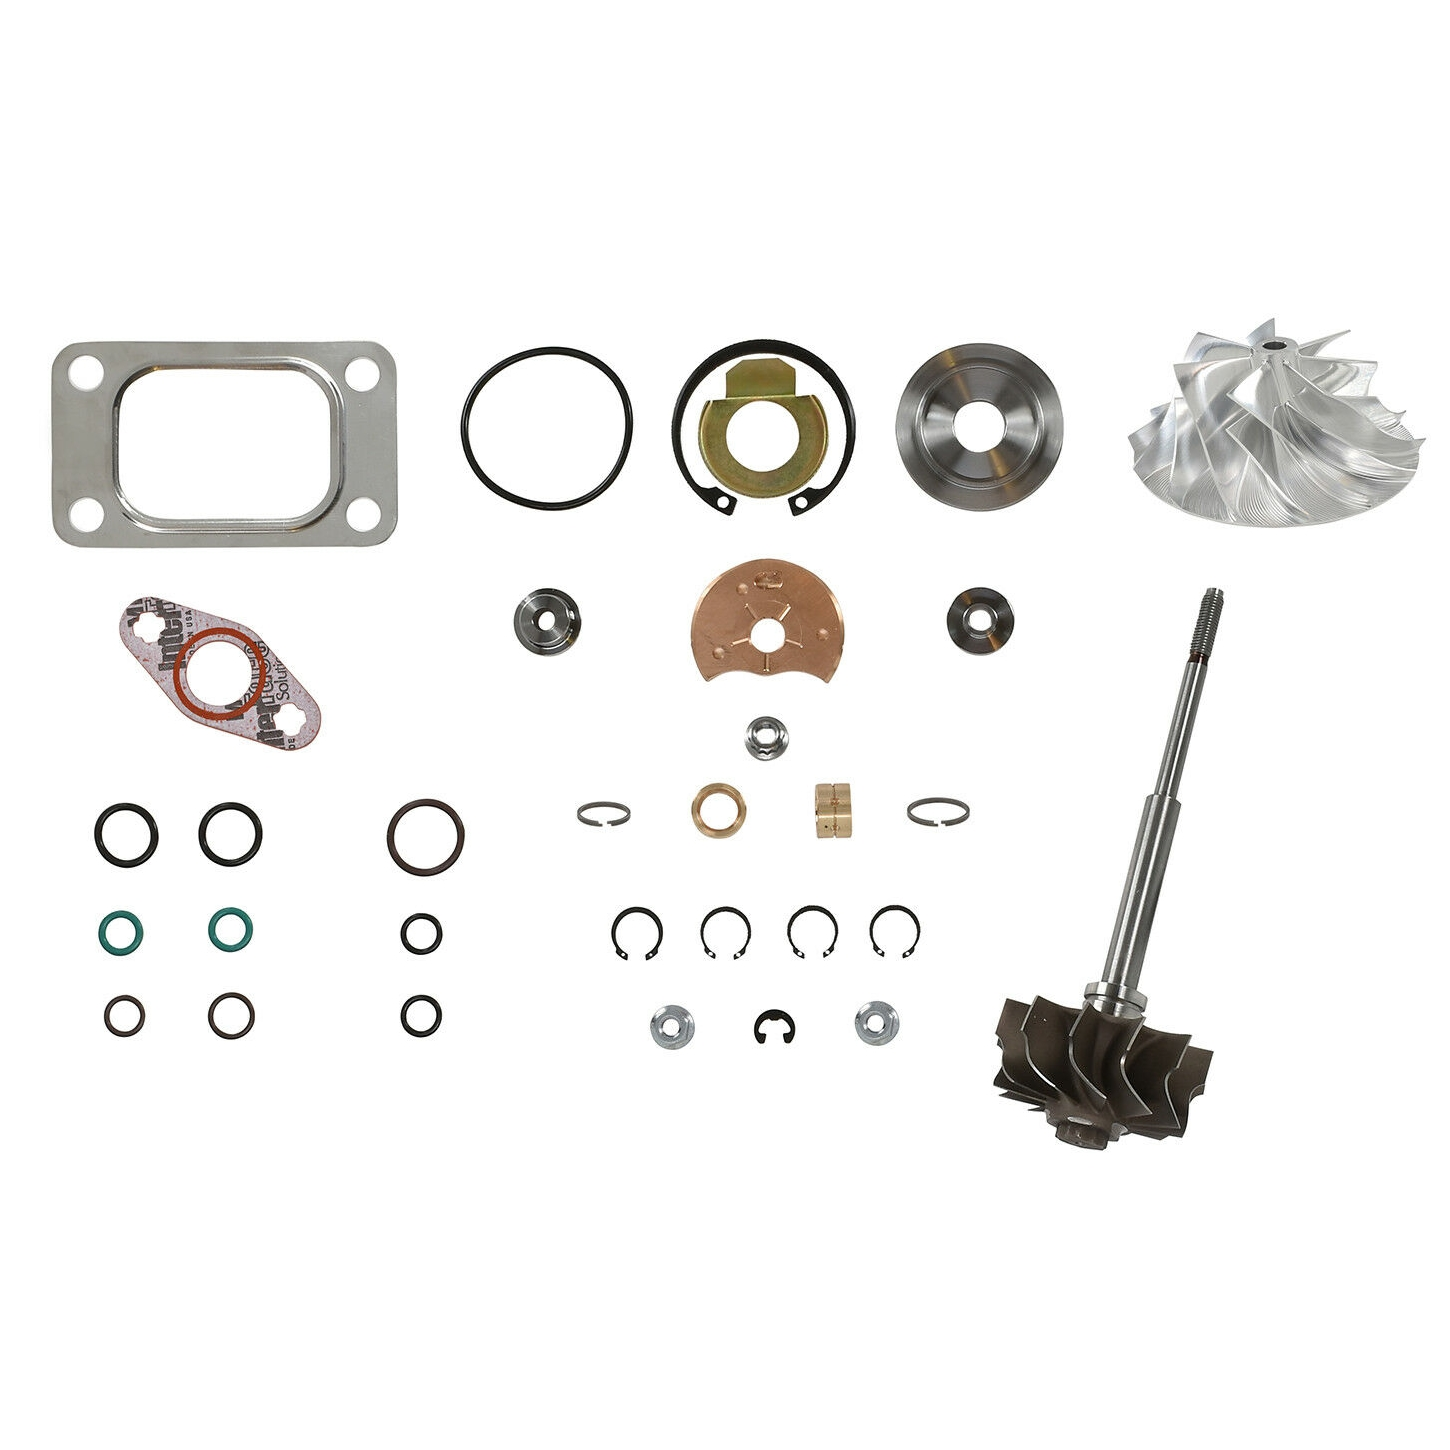 HE351CW Turbo Rebuild Kit Billet Wheel Turbine Shaft For 04.5-07 5.9L ISB Dodge Ram Cummins Diesel